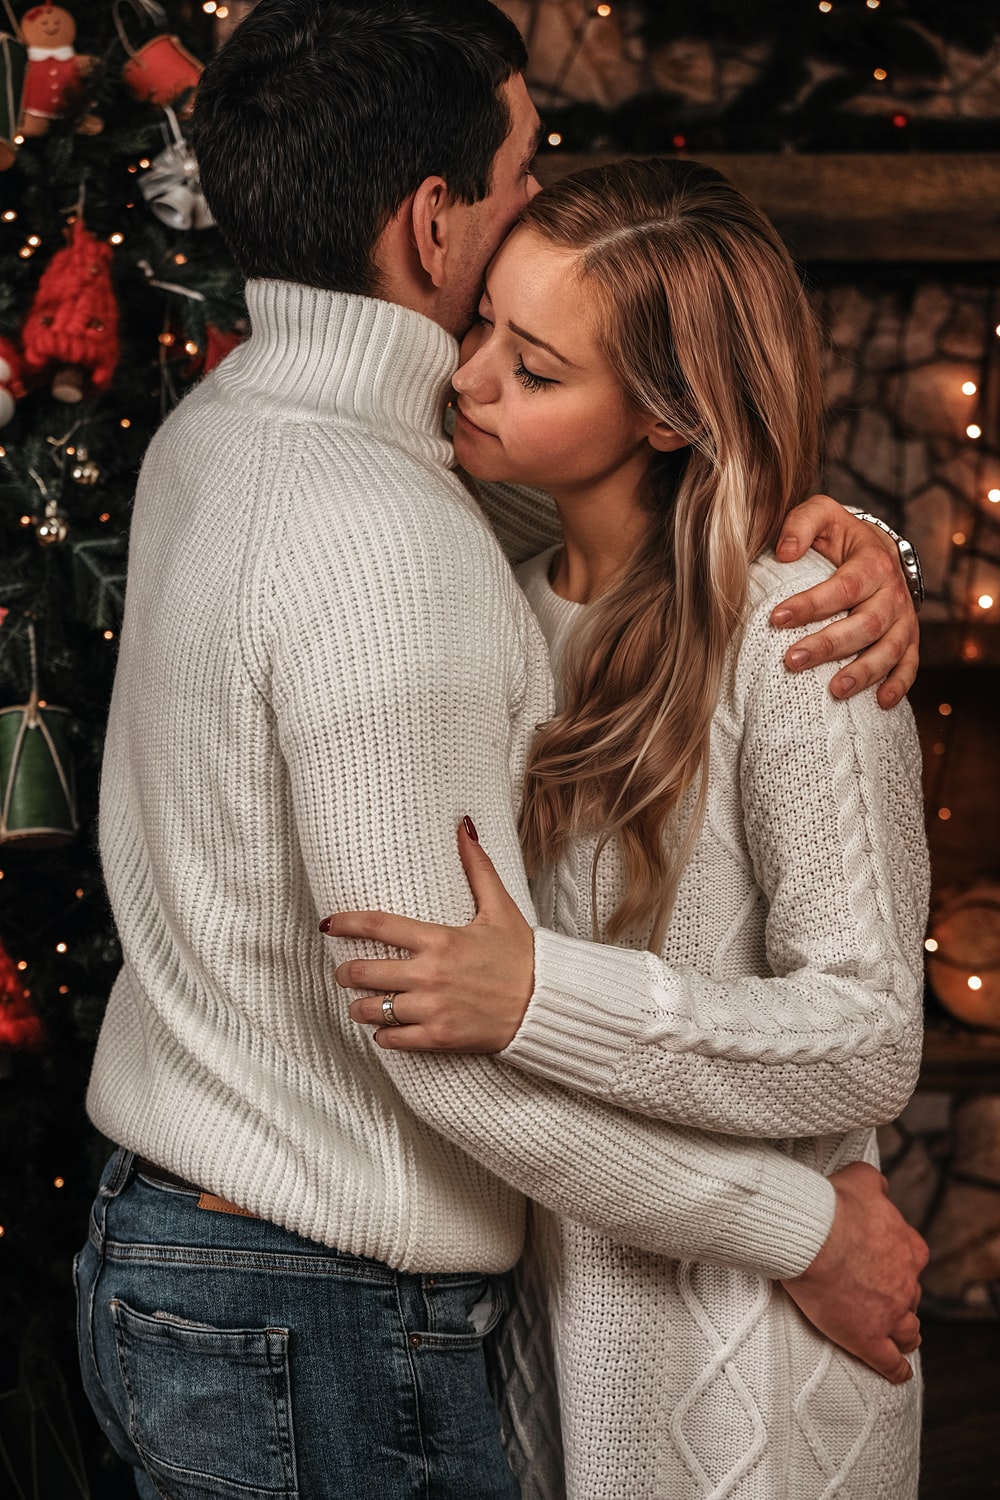 man in white sweater kissing woman in white sweater